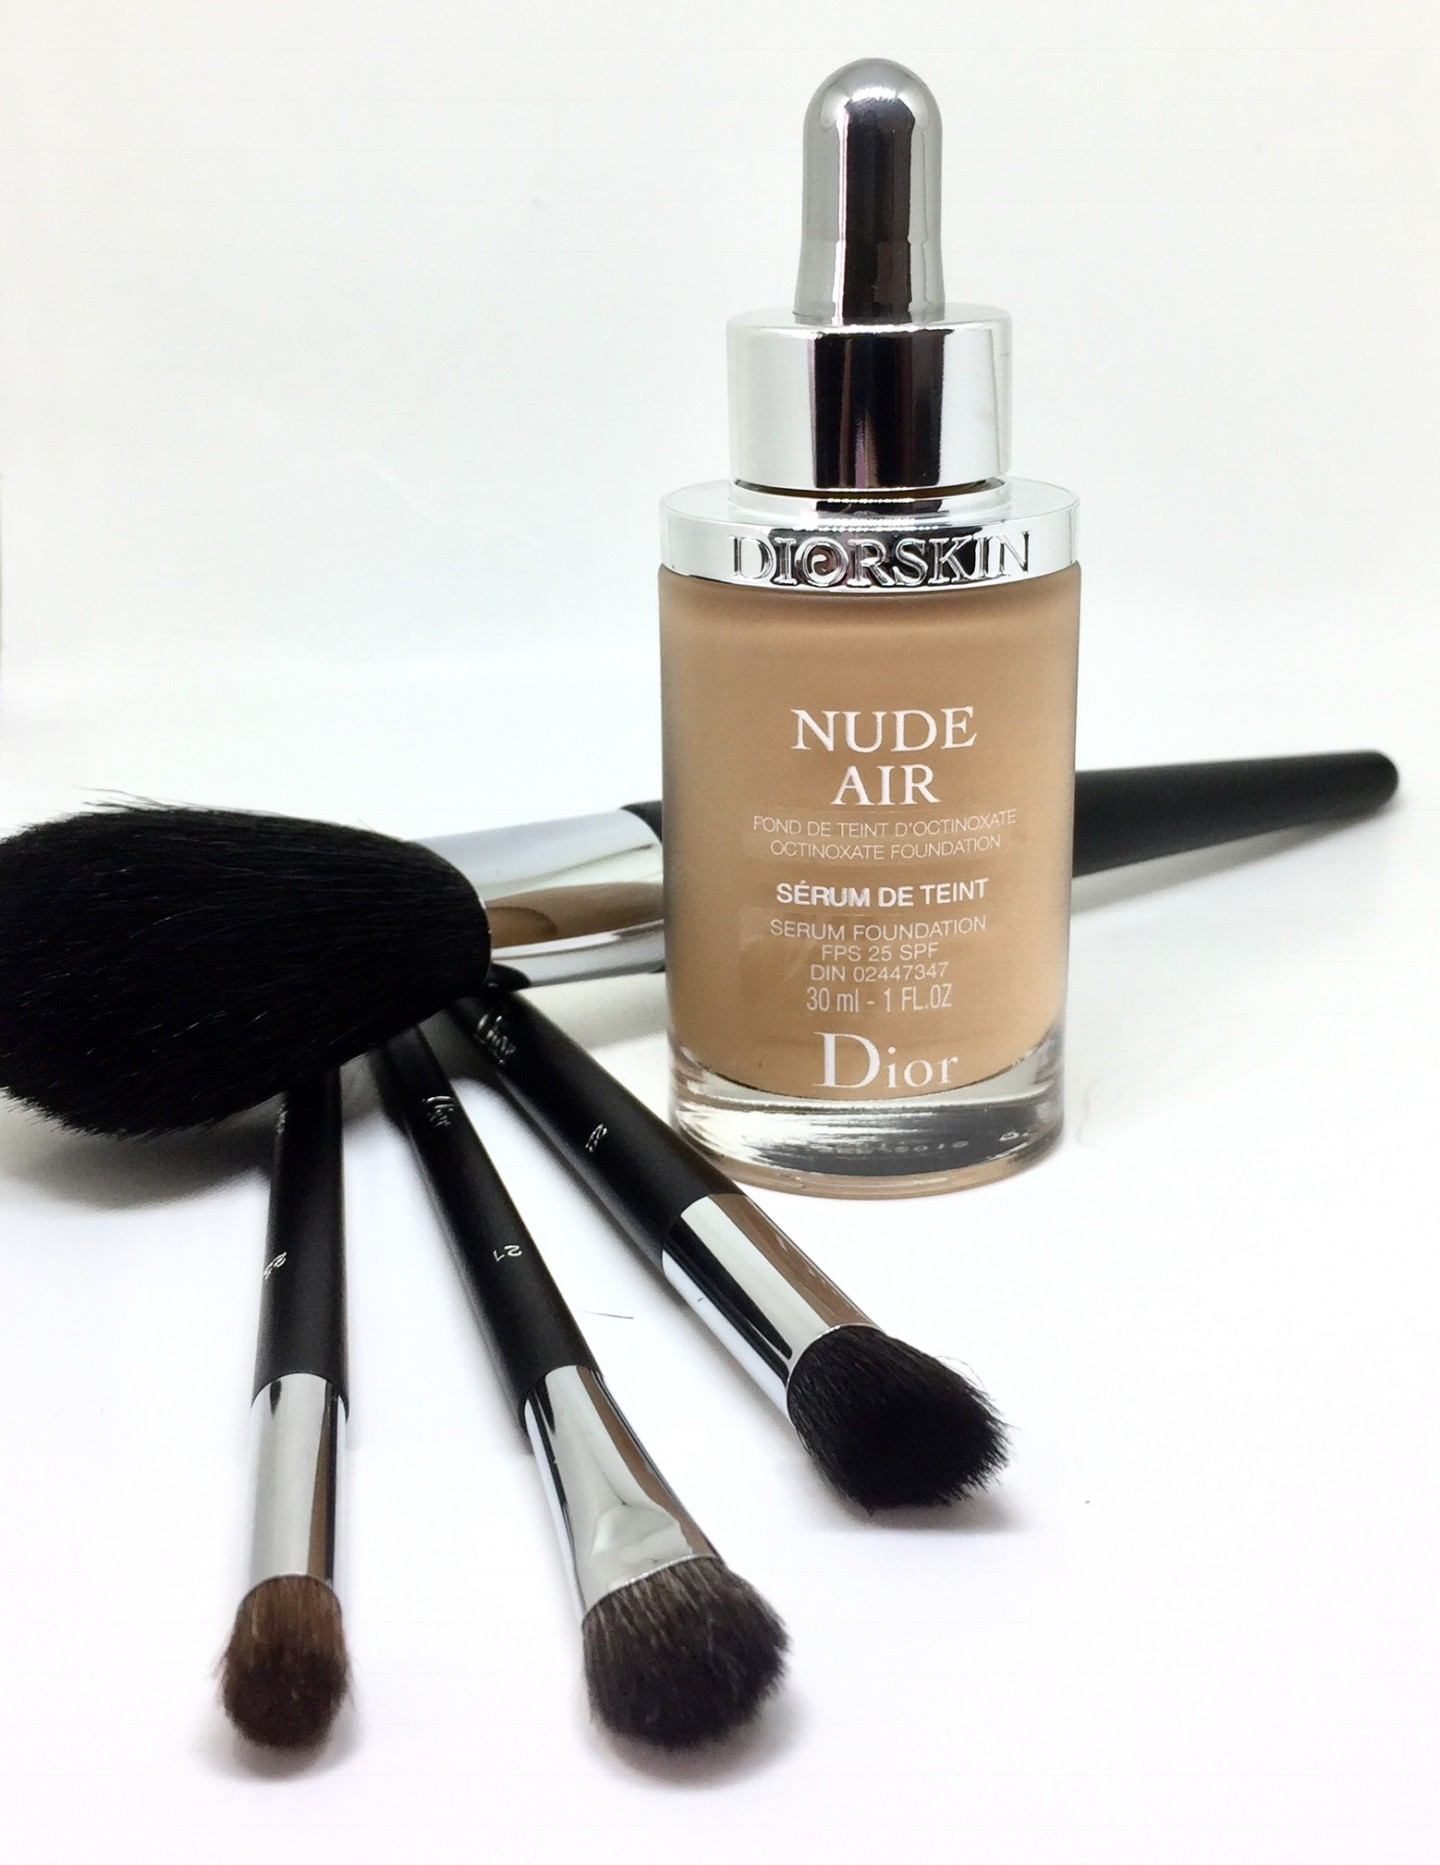 Diorskin NUDE AIR Serum Foundation